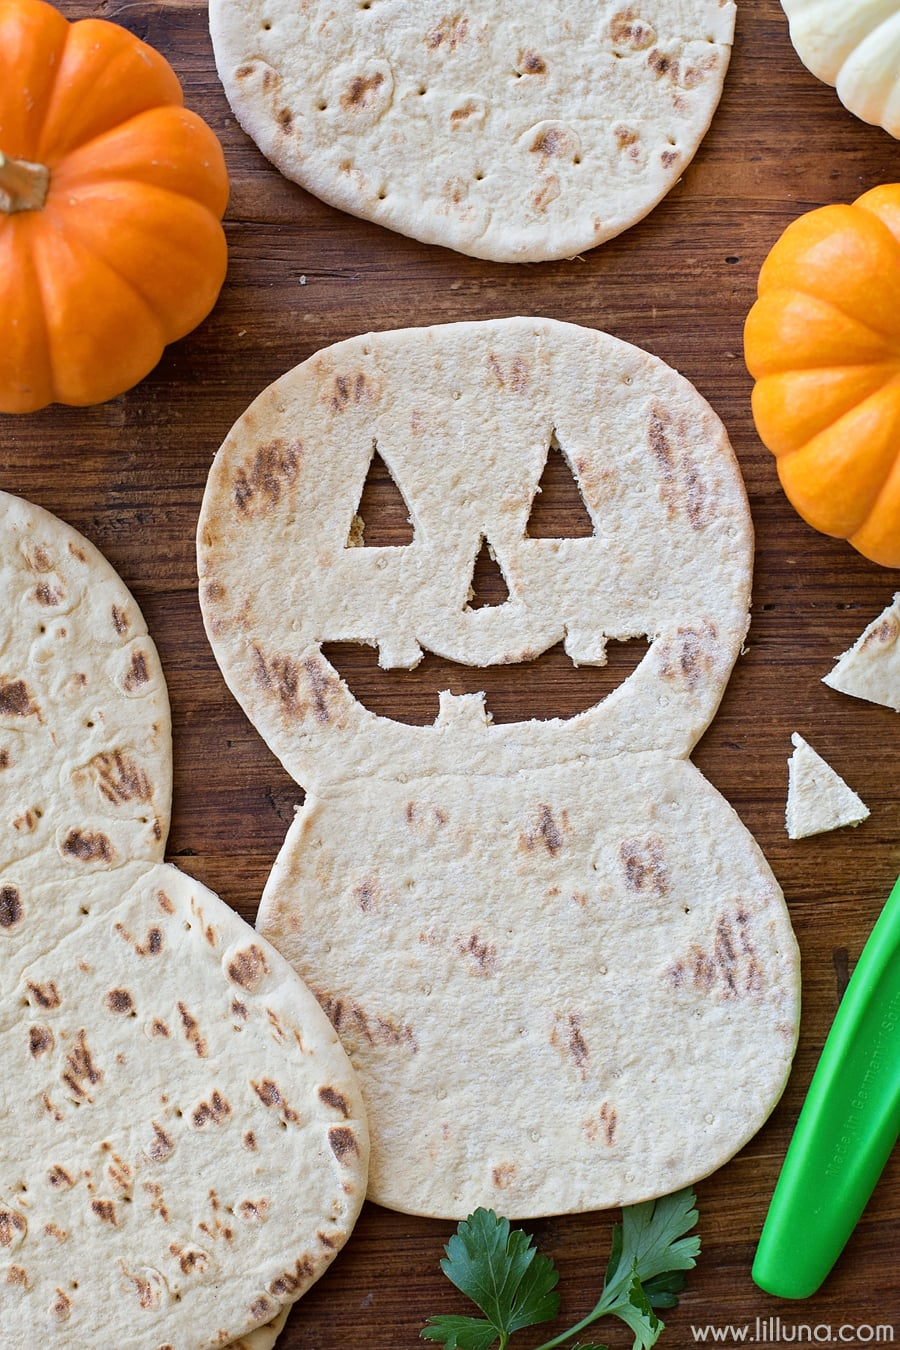 Flatbread Pumpkin Quesadillas - such a simple and cute recipe the kids will LOVE for Halloween.